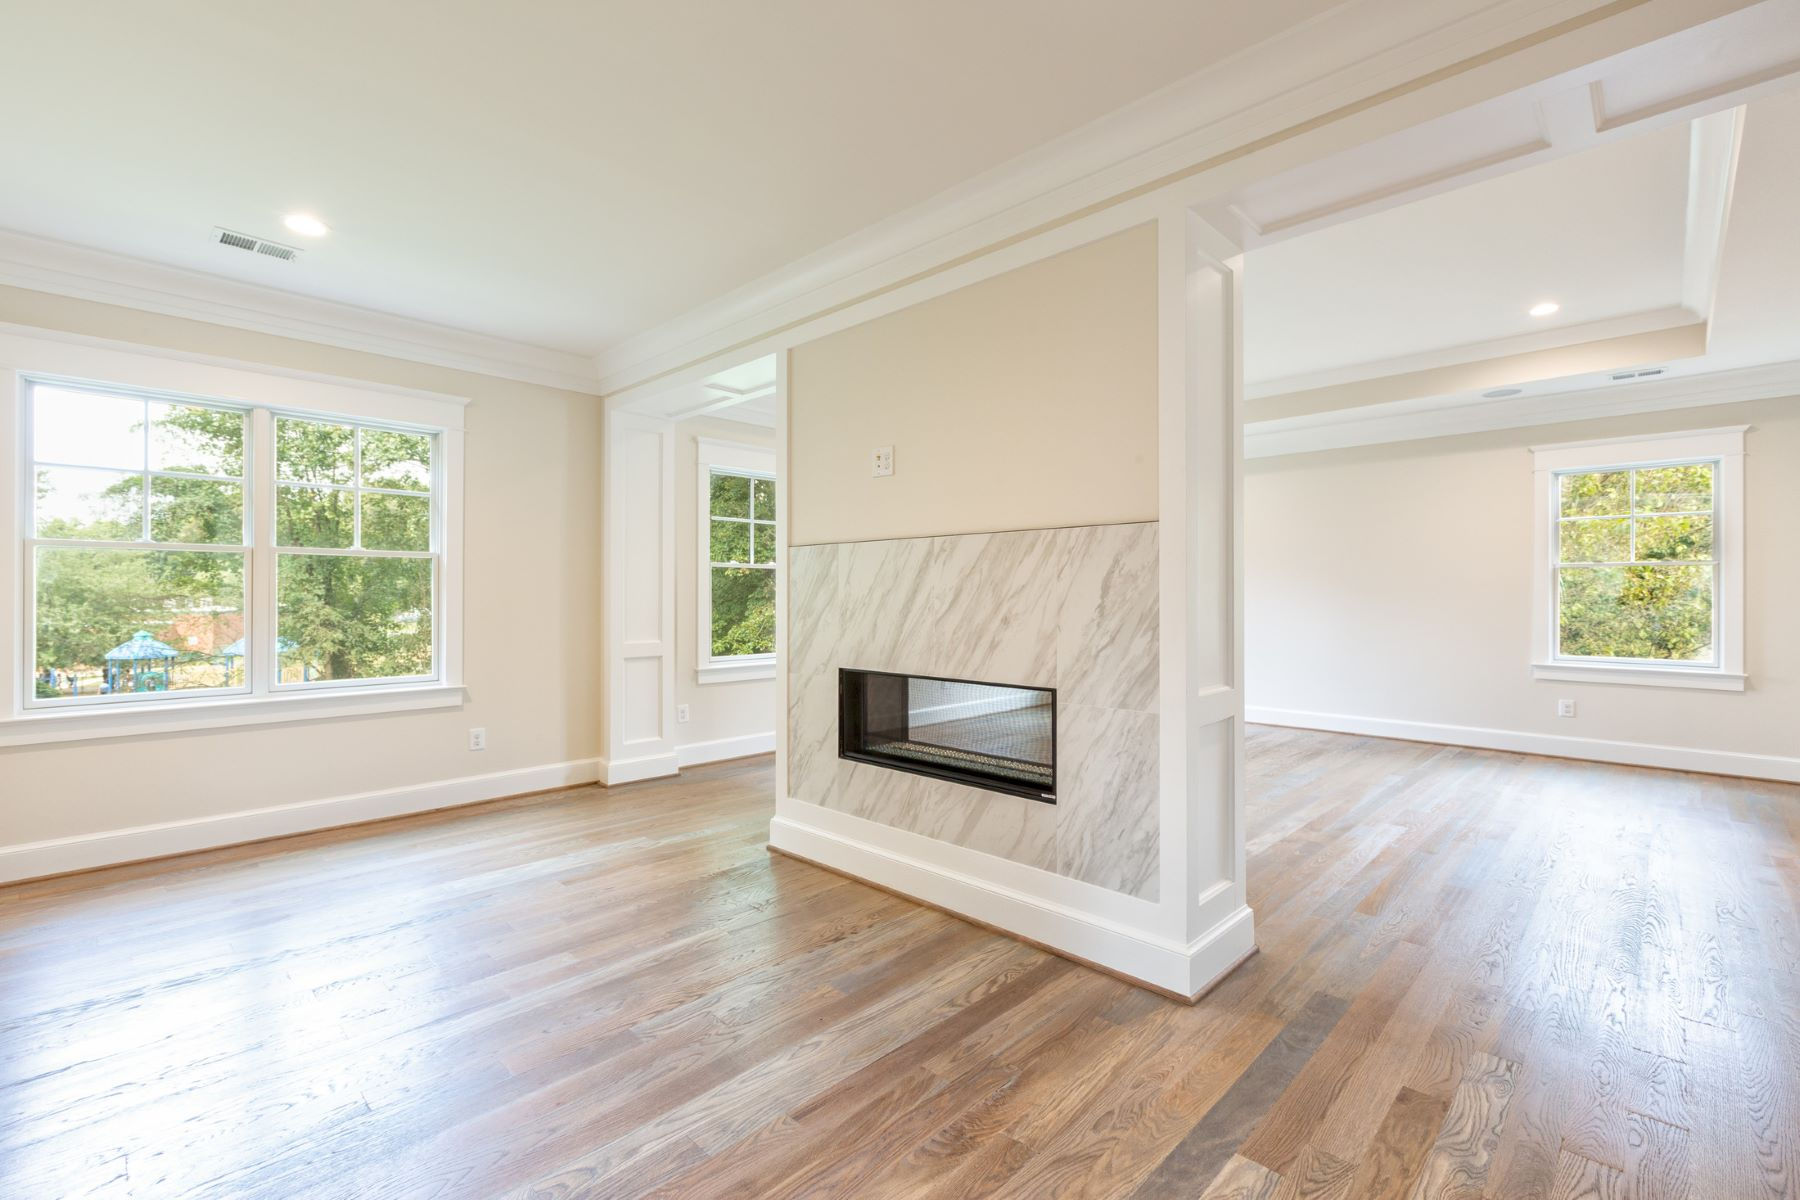 Additional photo for property listing at 9222 Dellwood Dr 9222 Dellwood Dr Vienna, Virginia 22180 United States